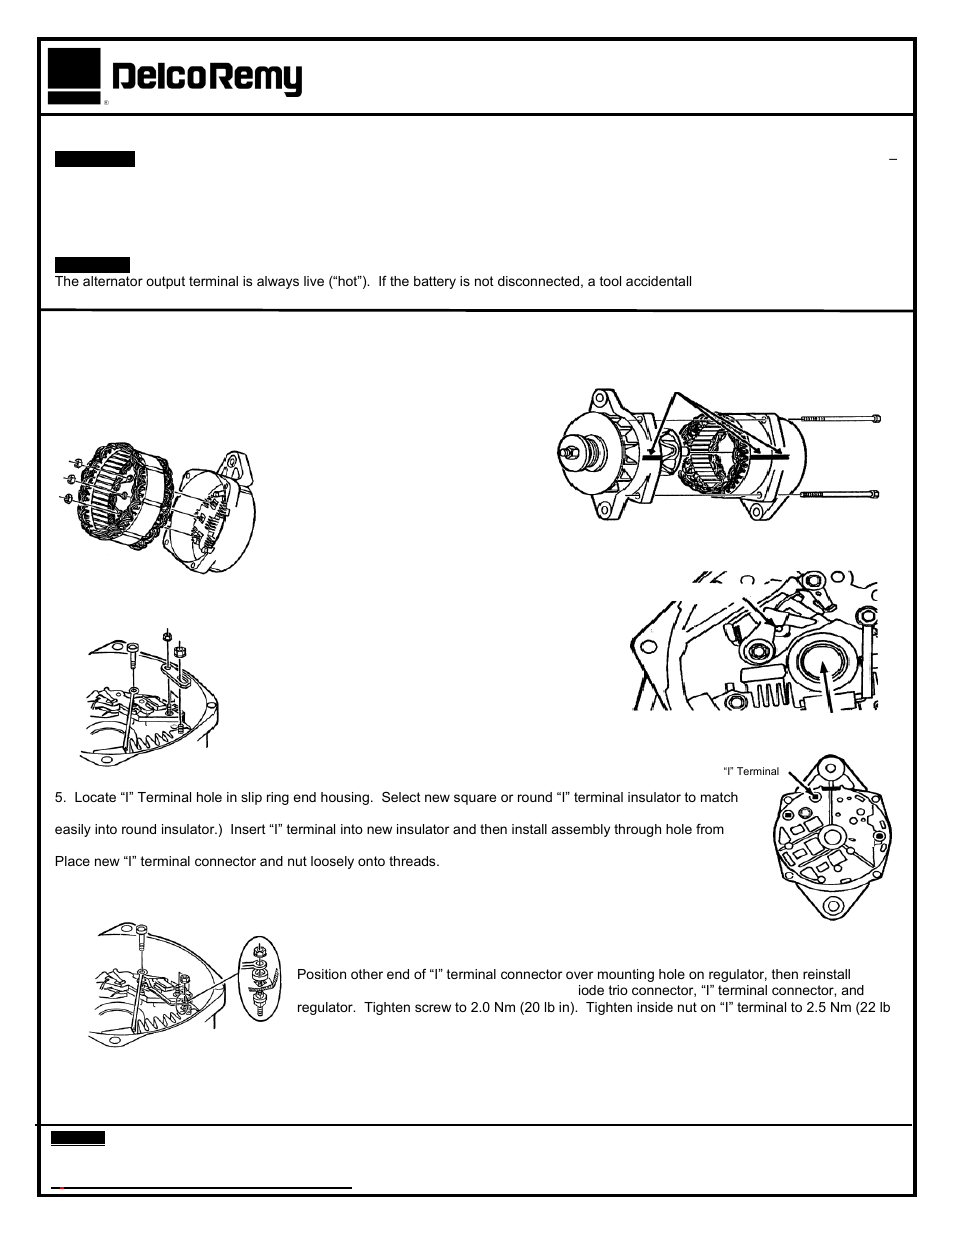 Remy 22si I Terminal Retrofit Kit 10511625 User Manual 2 Pages Delco Alternator Wiring Diagram Also For 21si